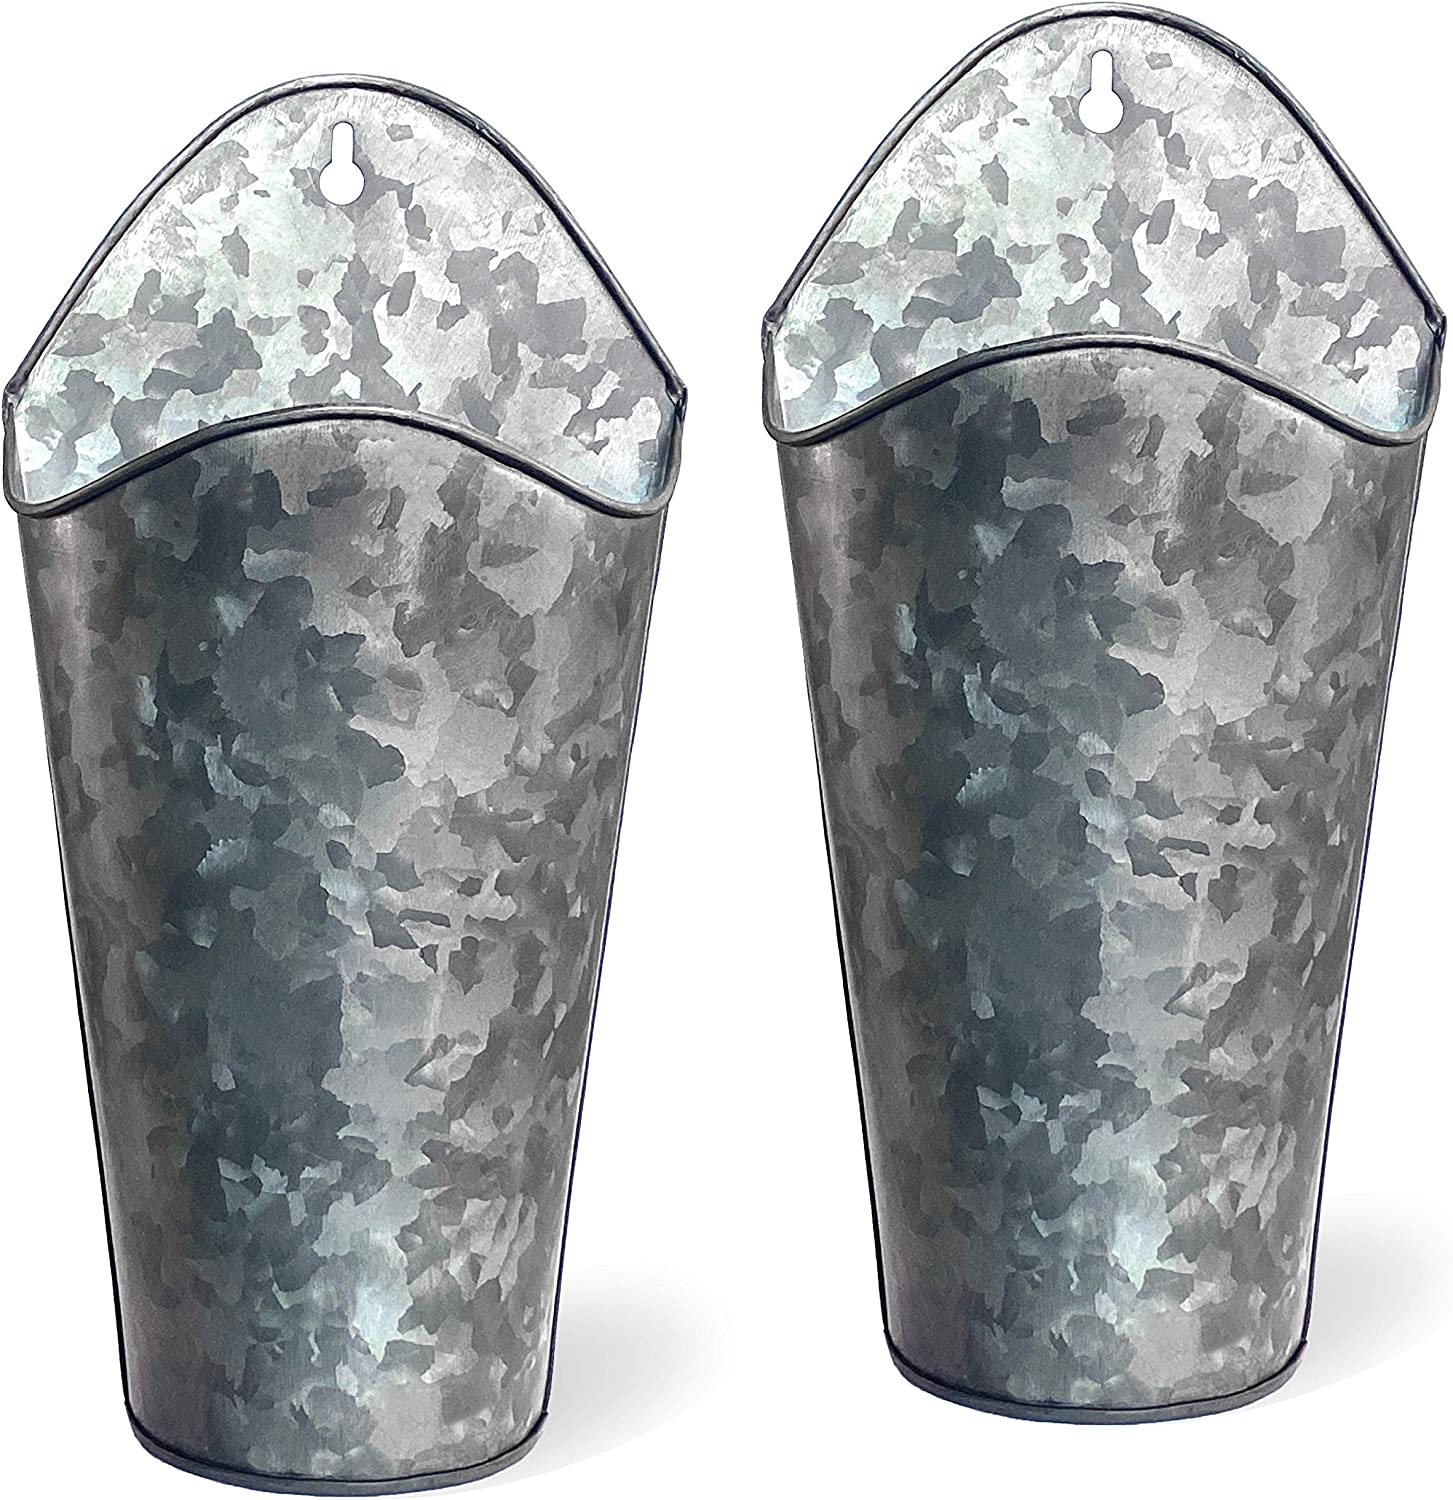 Ivy Echo Galvanized Metal Wall Planters - Set of 2 Farmhouse Style Home Wall Decor Planters. Hanging Wall Vase Planters for Flowers, Herbs, Air Plants, Faux Plants, Decorations and More